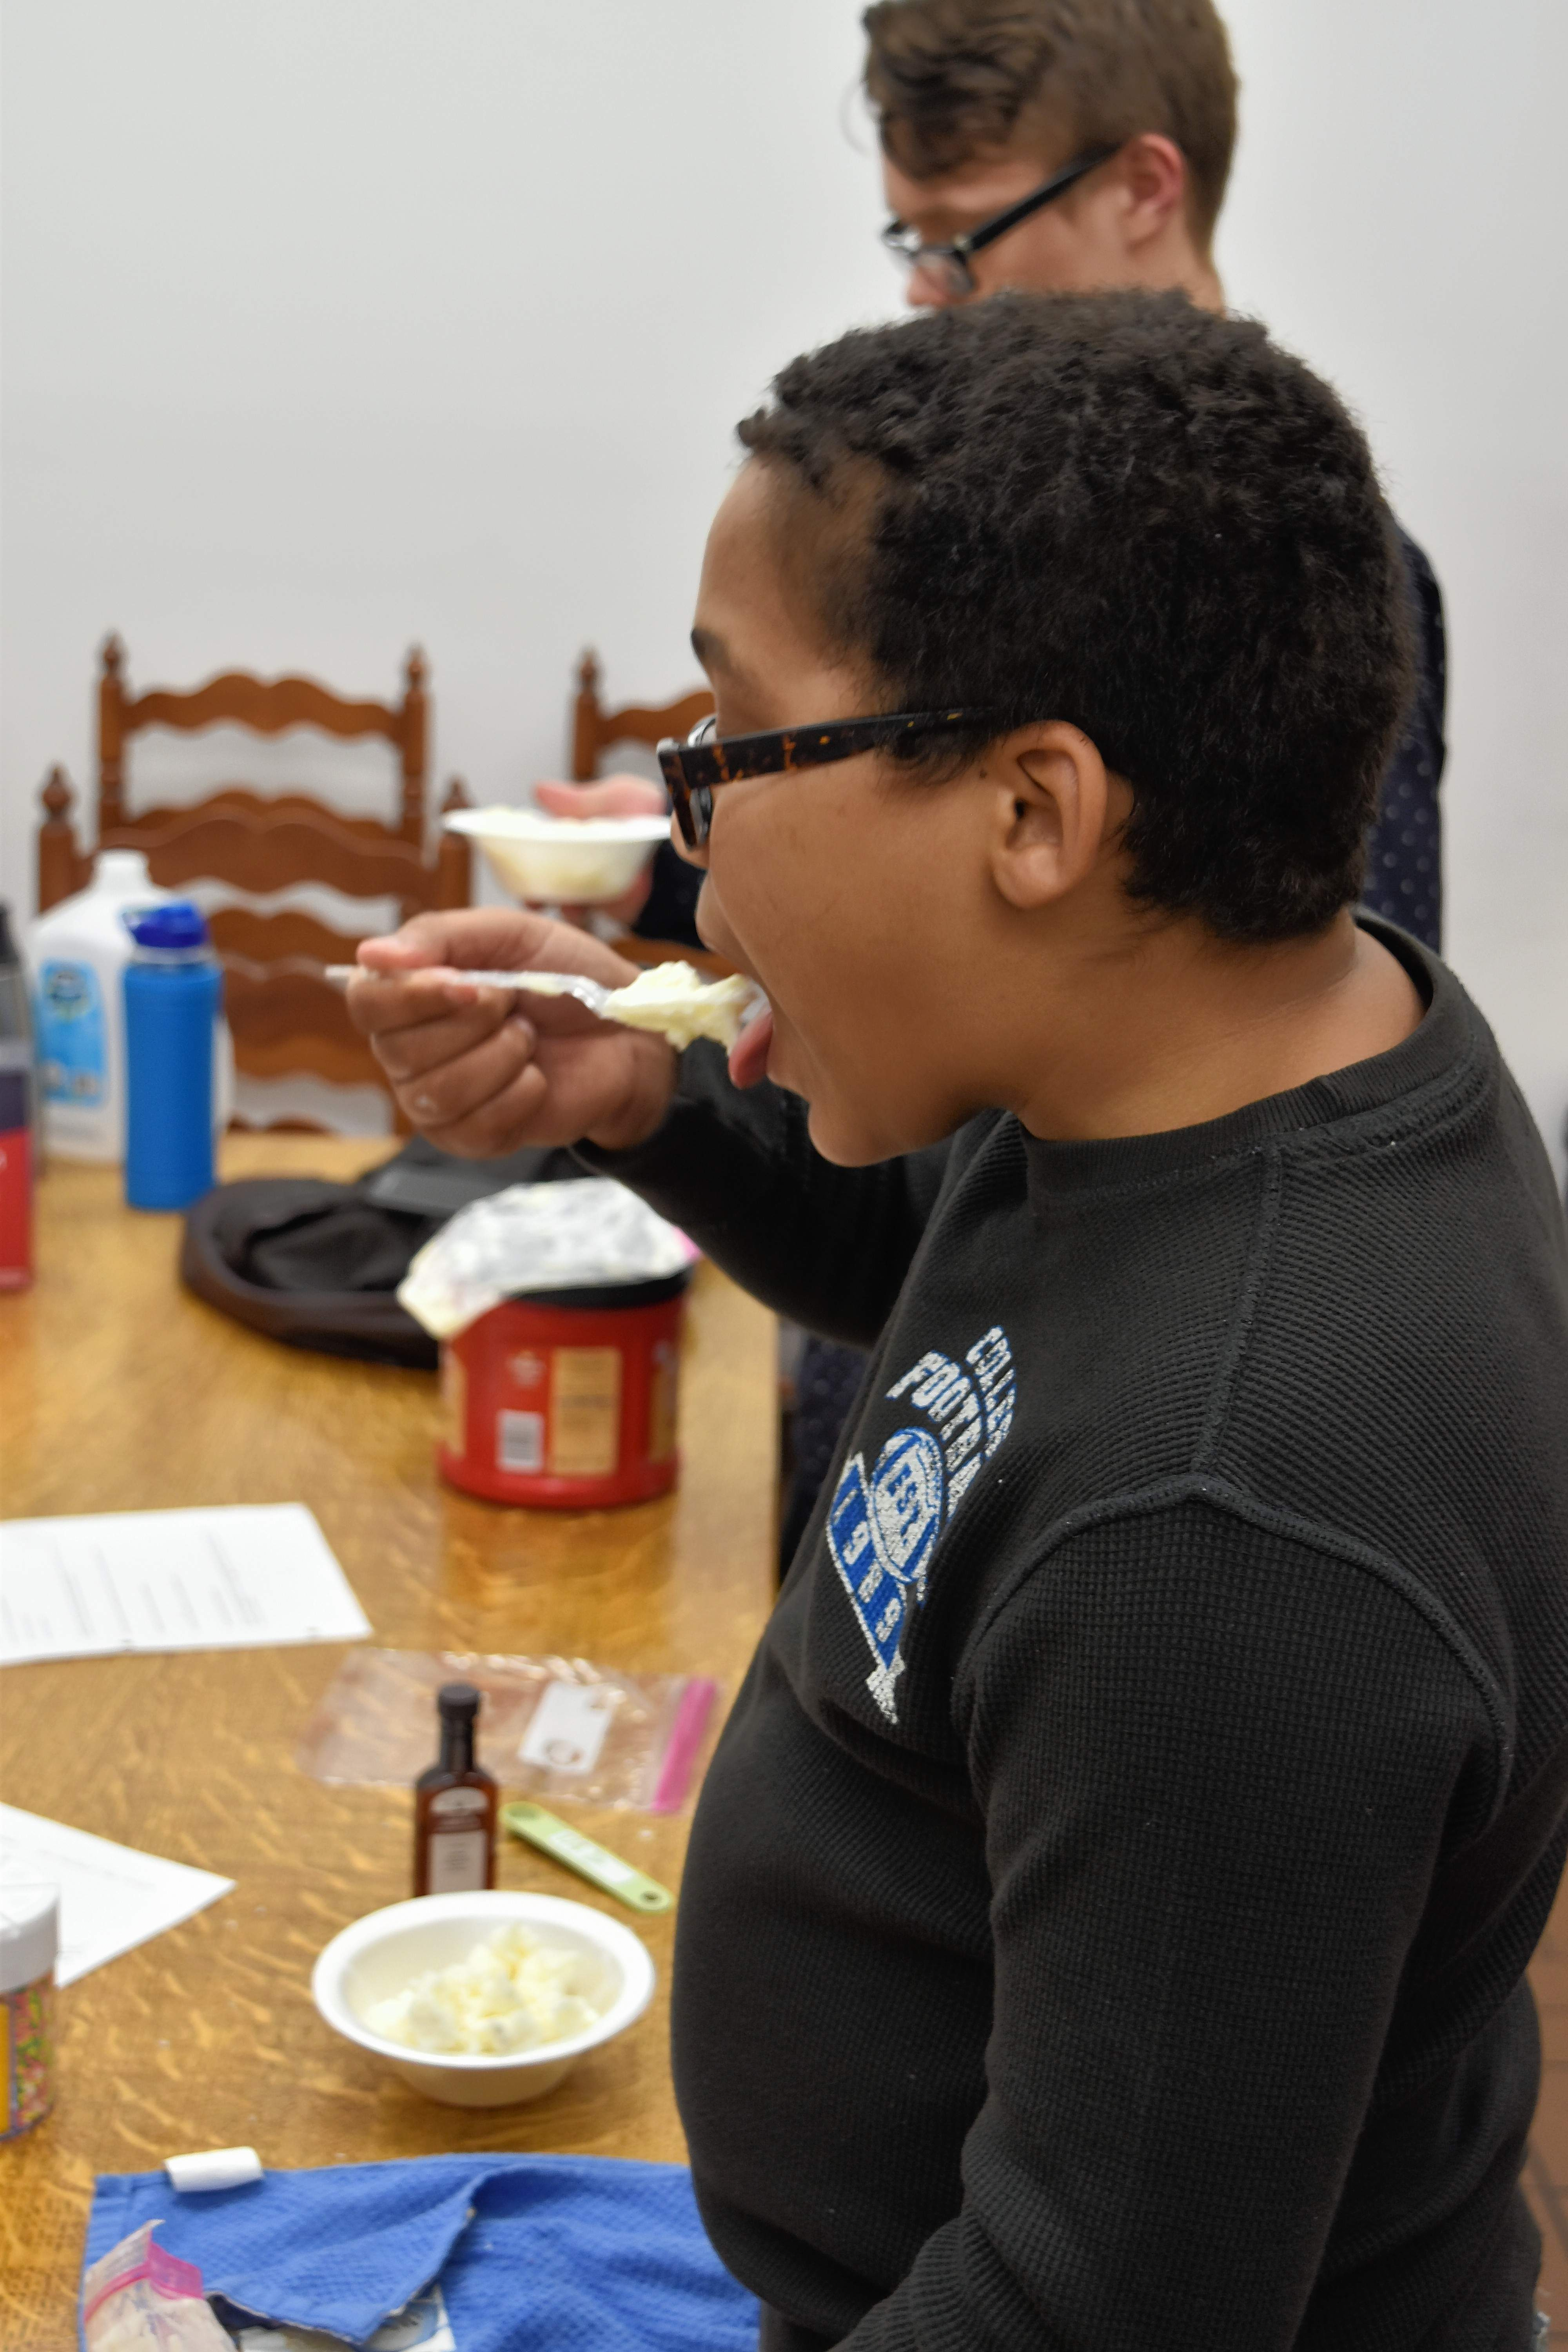 Caleb Nelson, foreground, samples vanilla ice cream he made himself. It looks pretty good!